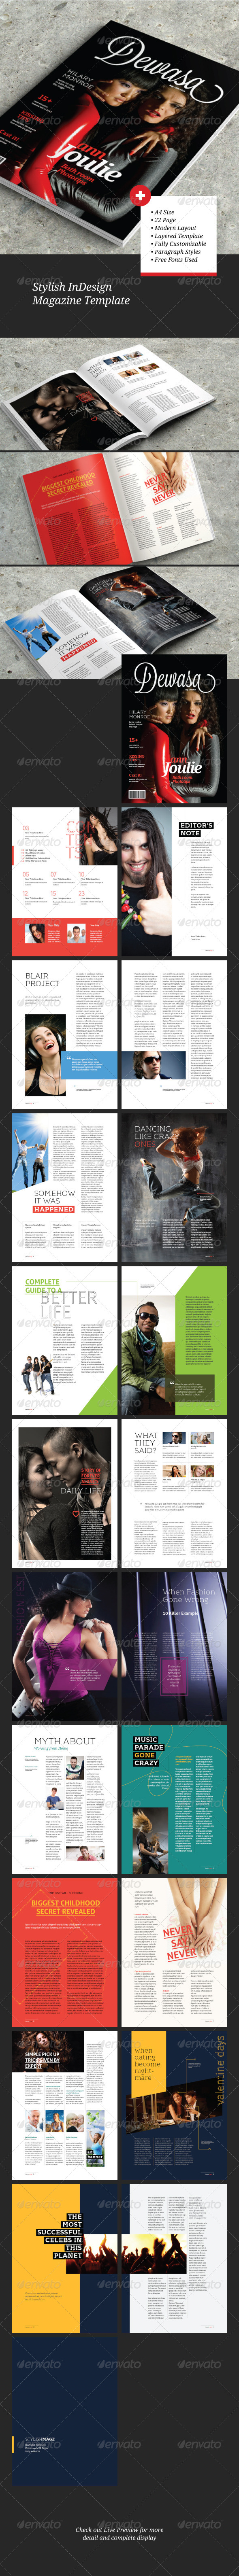 A4/Leter Stylish InDesign Magazine Template - Magazines Print Templates